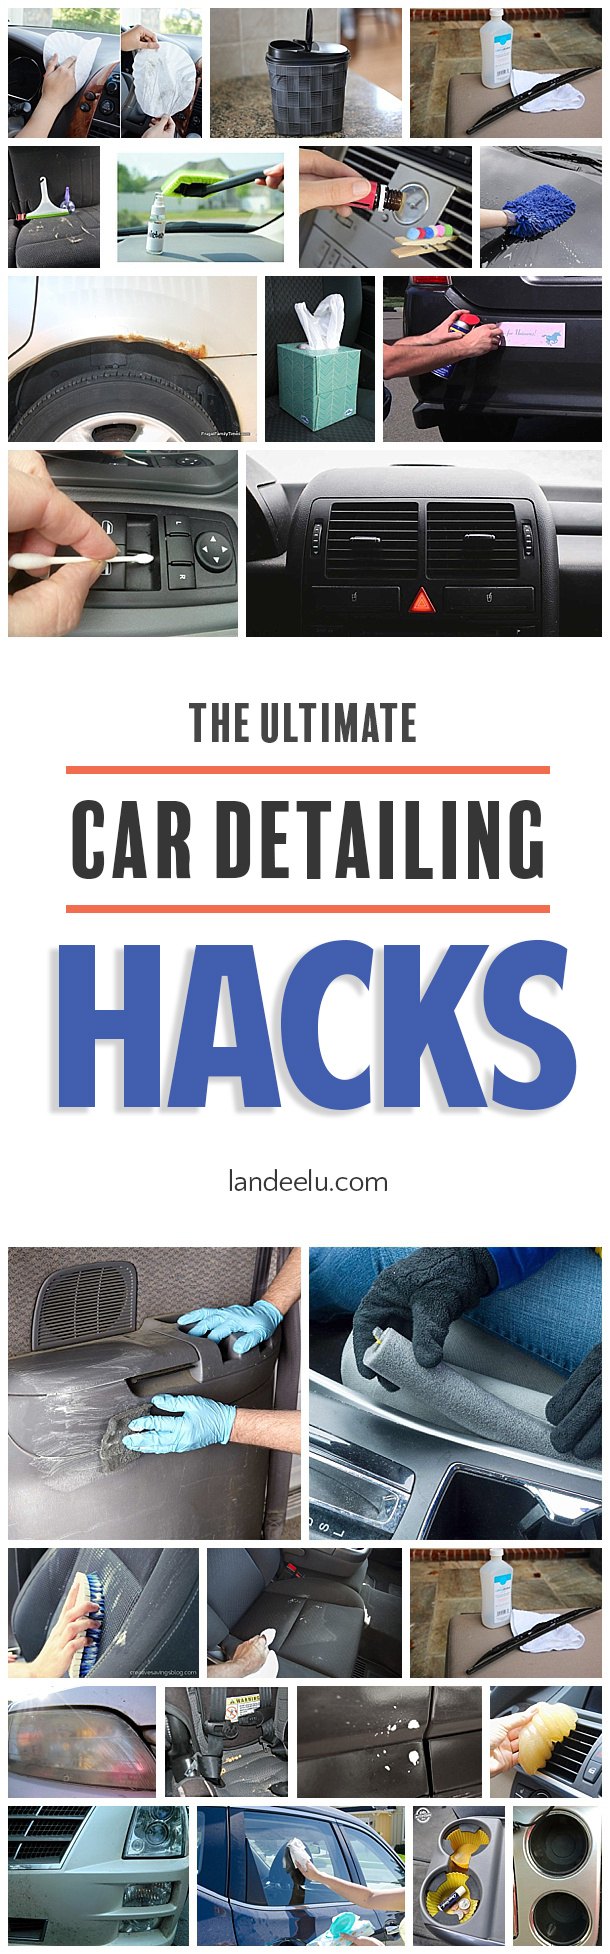 Love these awesome car detailing hacks, tips and tricks! A clean car is my love language! #cardetailing #cleaninghacks #cleaningtips